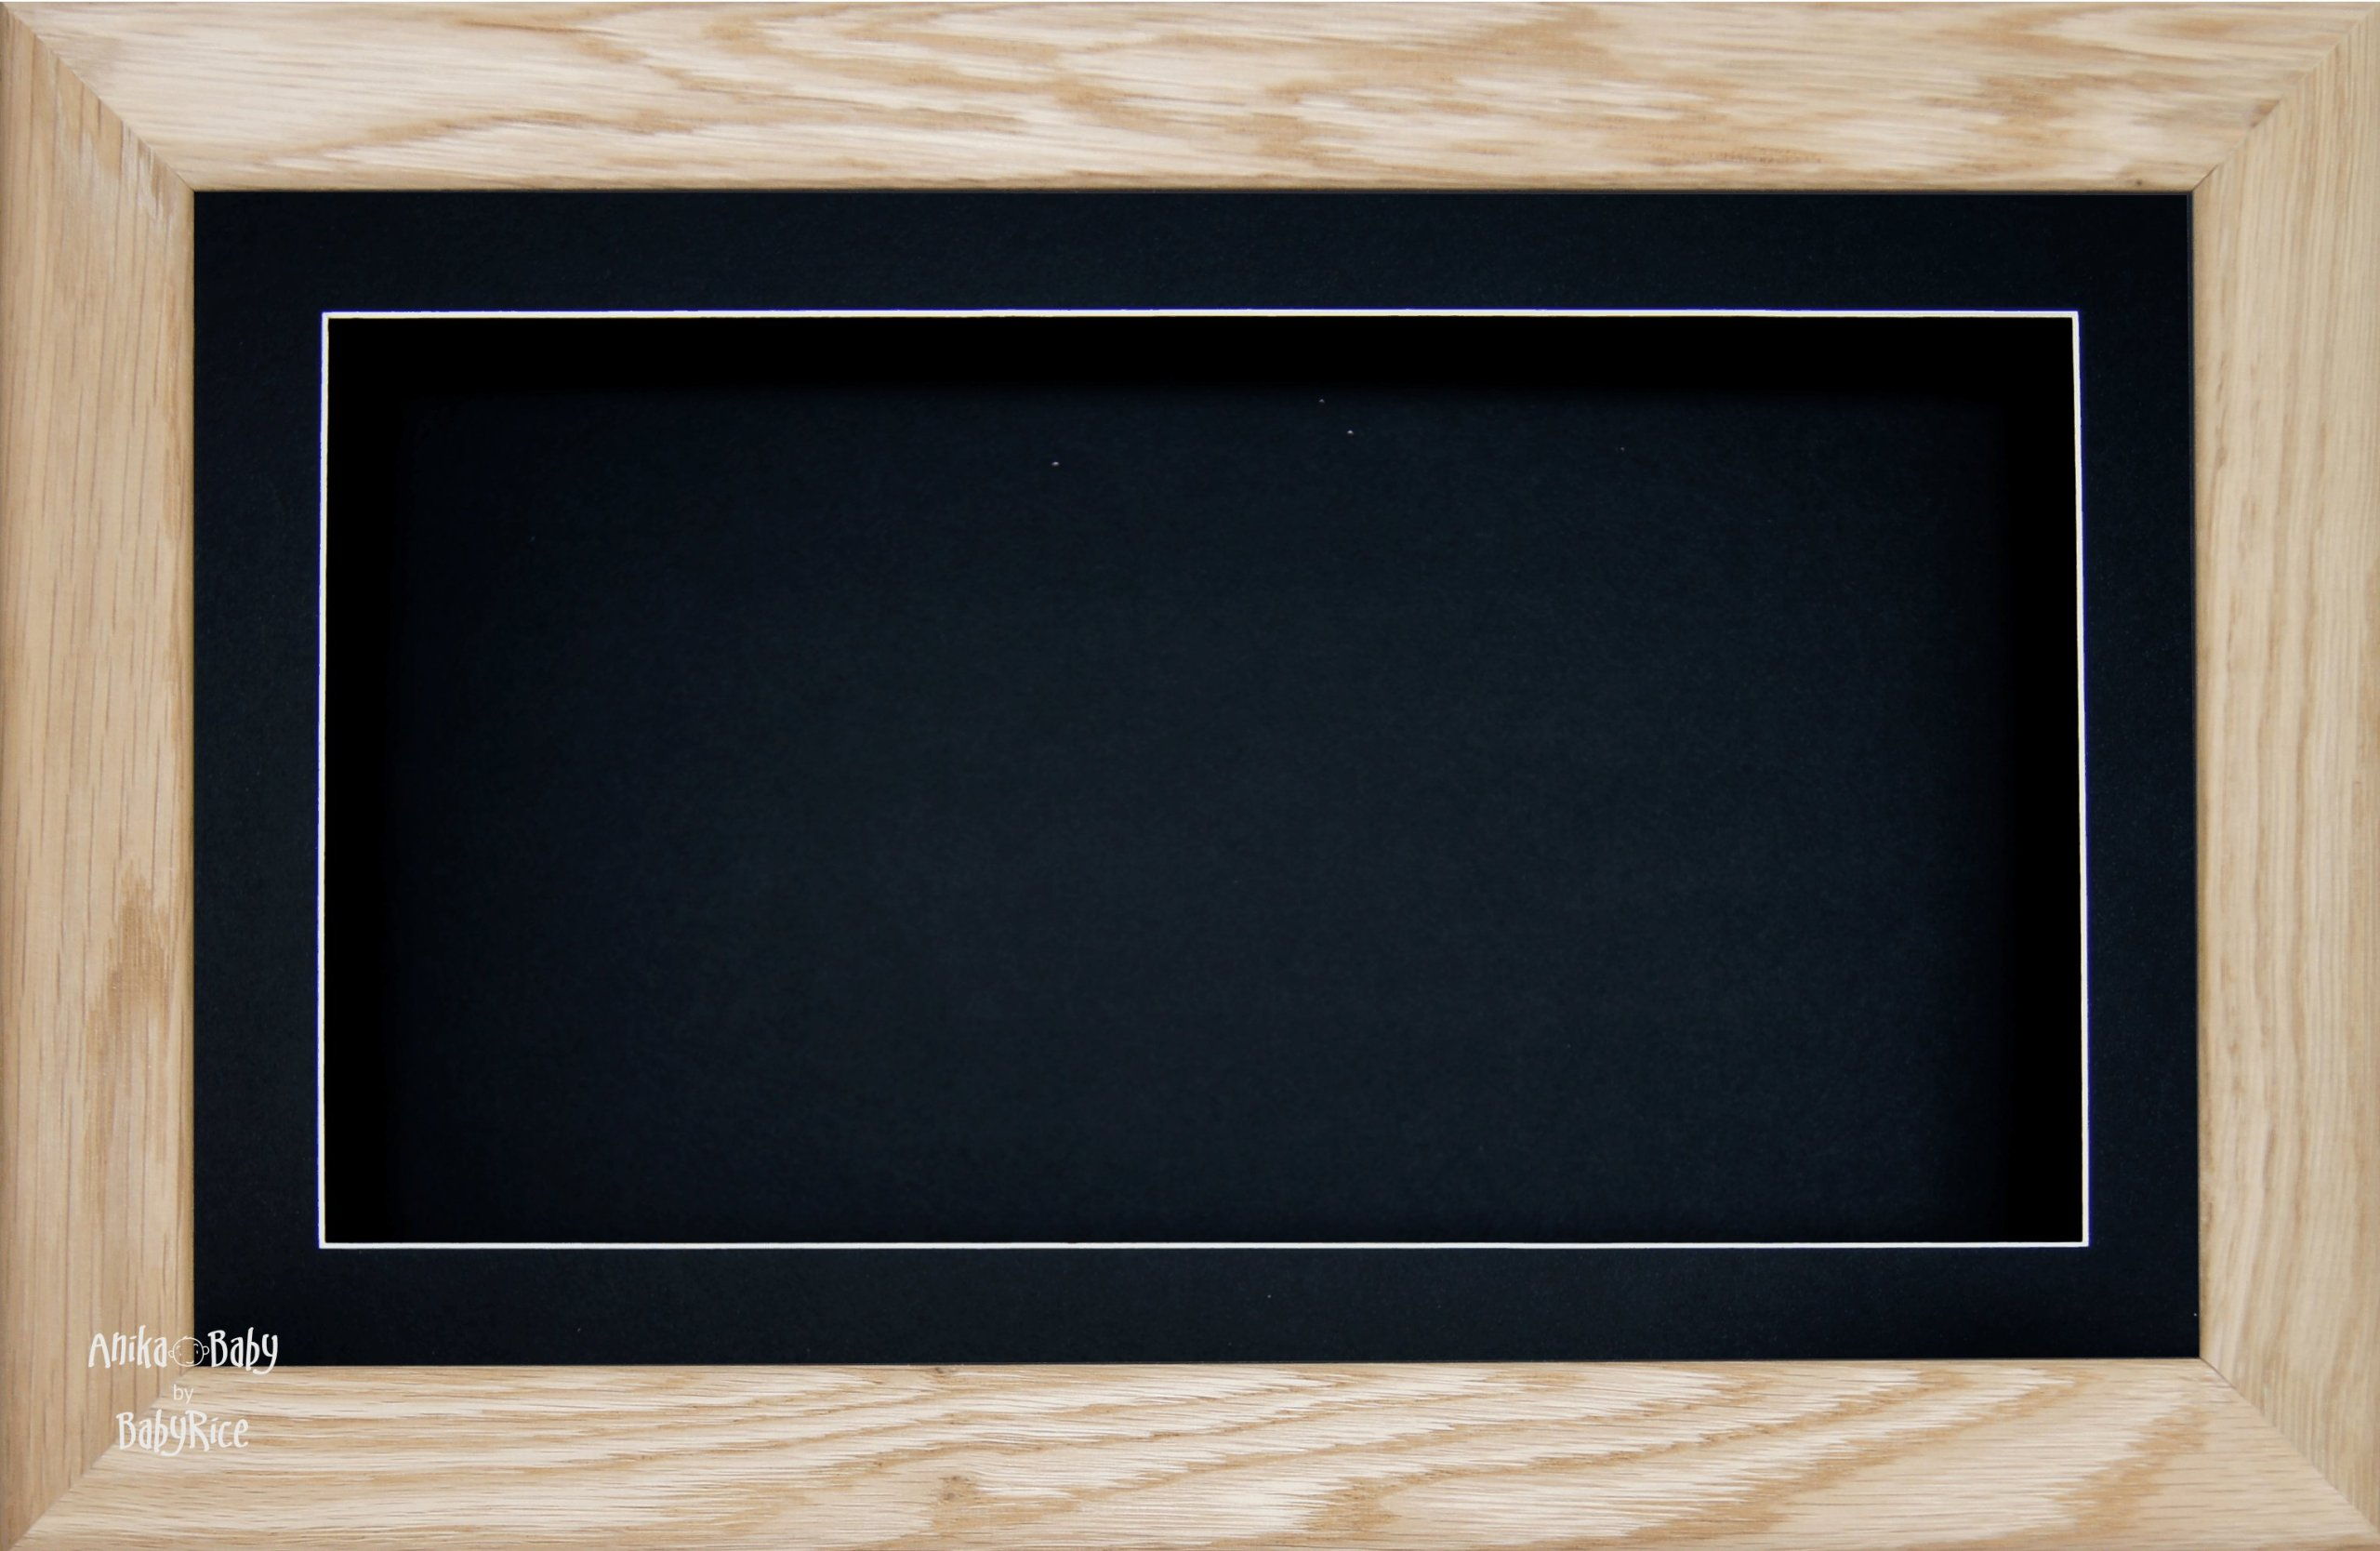 BabyRice Large 7x13'' / 13x7'' Display Wooden Box Frame in Solid Oak Wood with Black Mount Card & Backing Card, Glass Front 14.5x8.5''